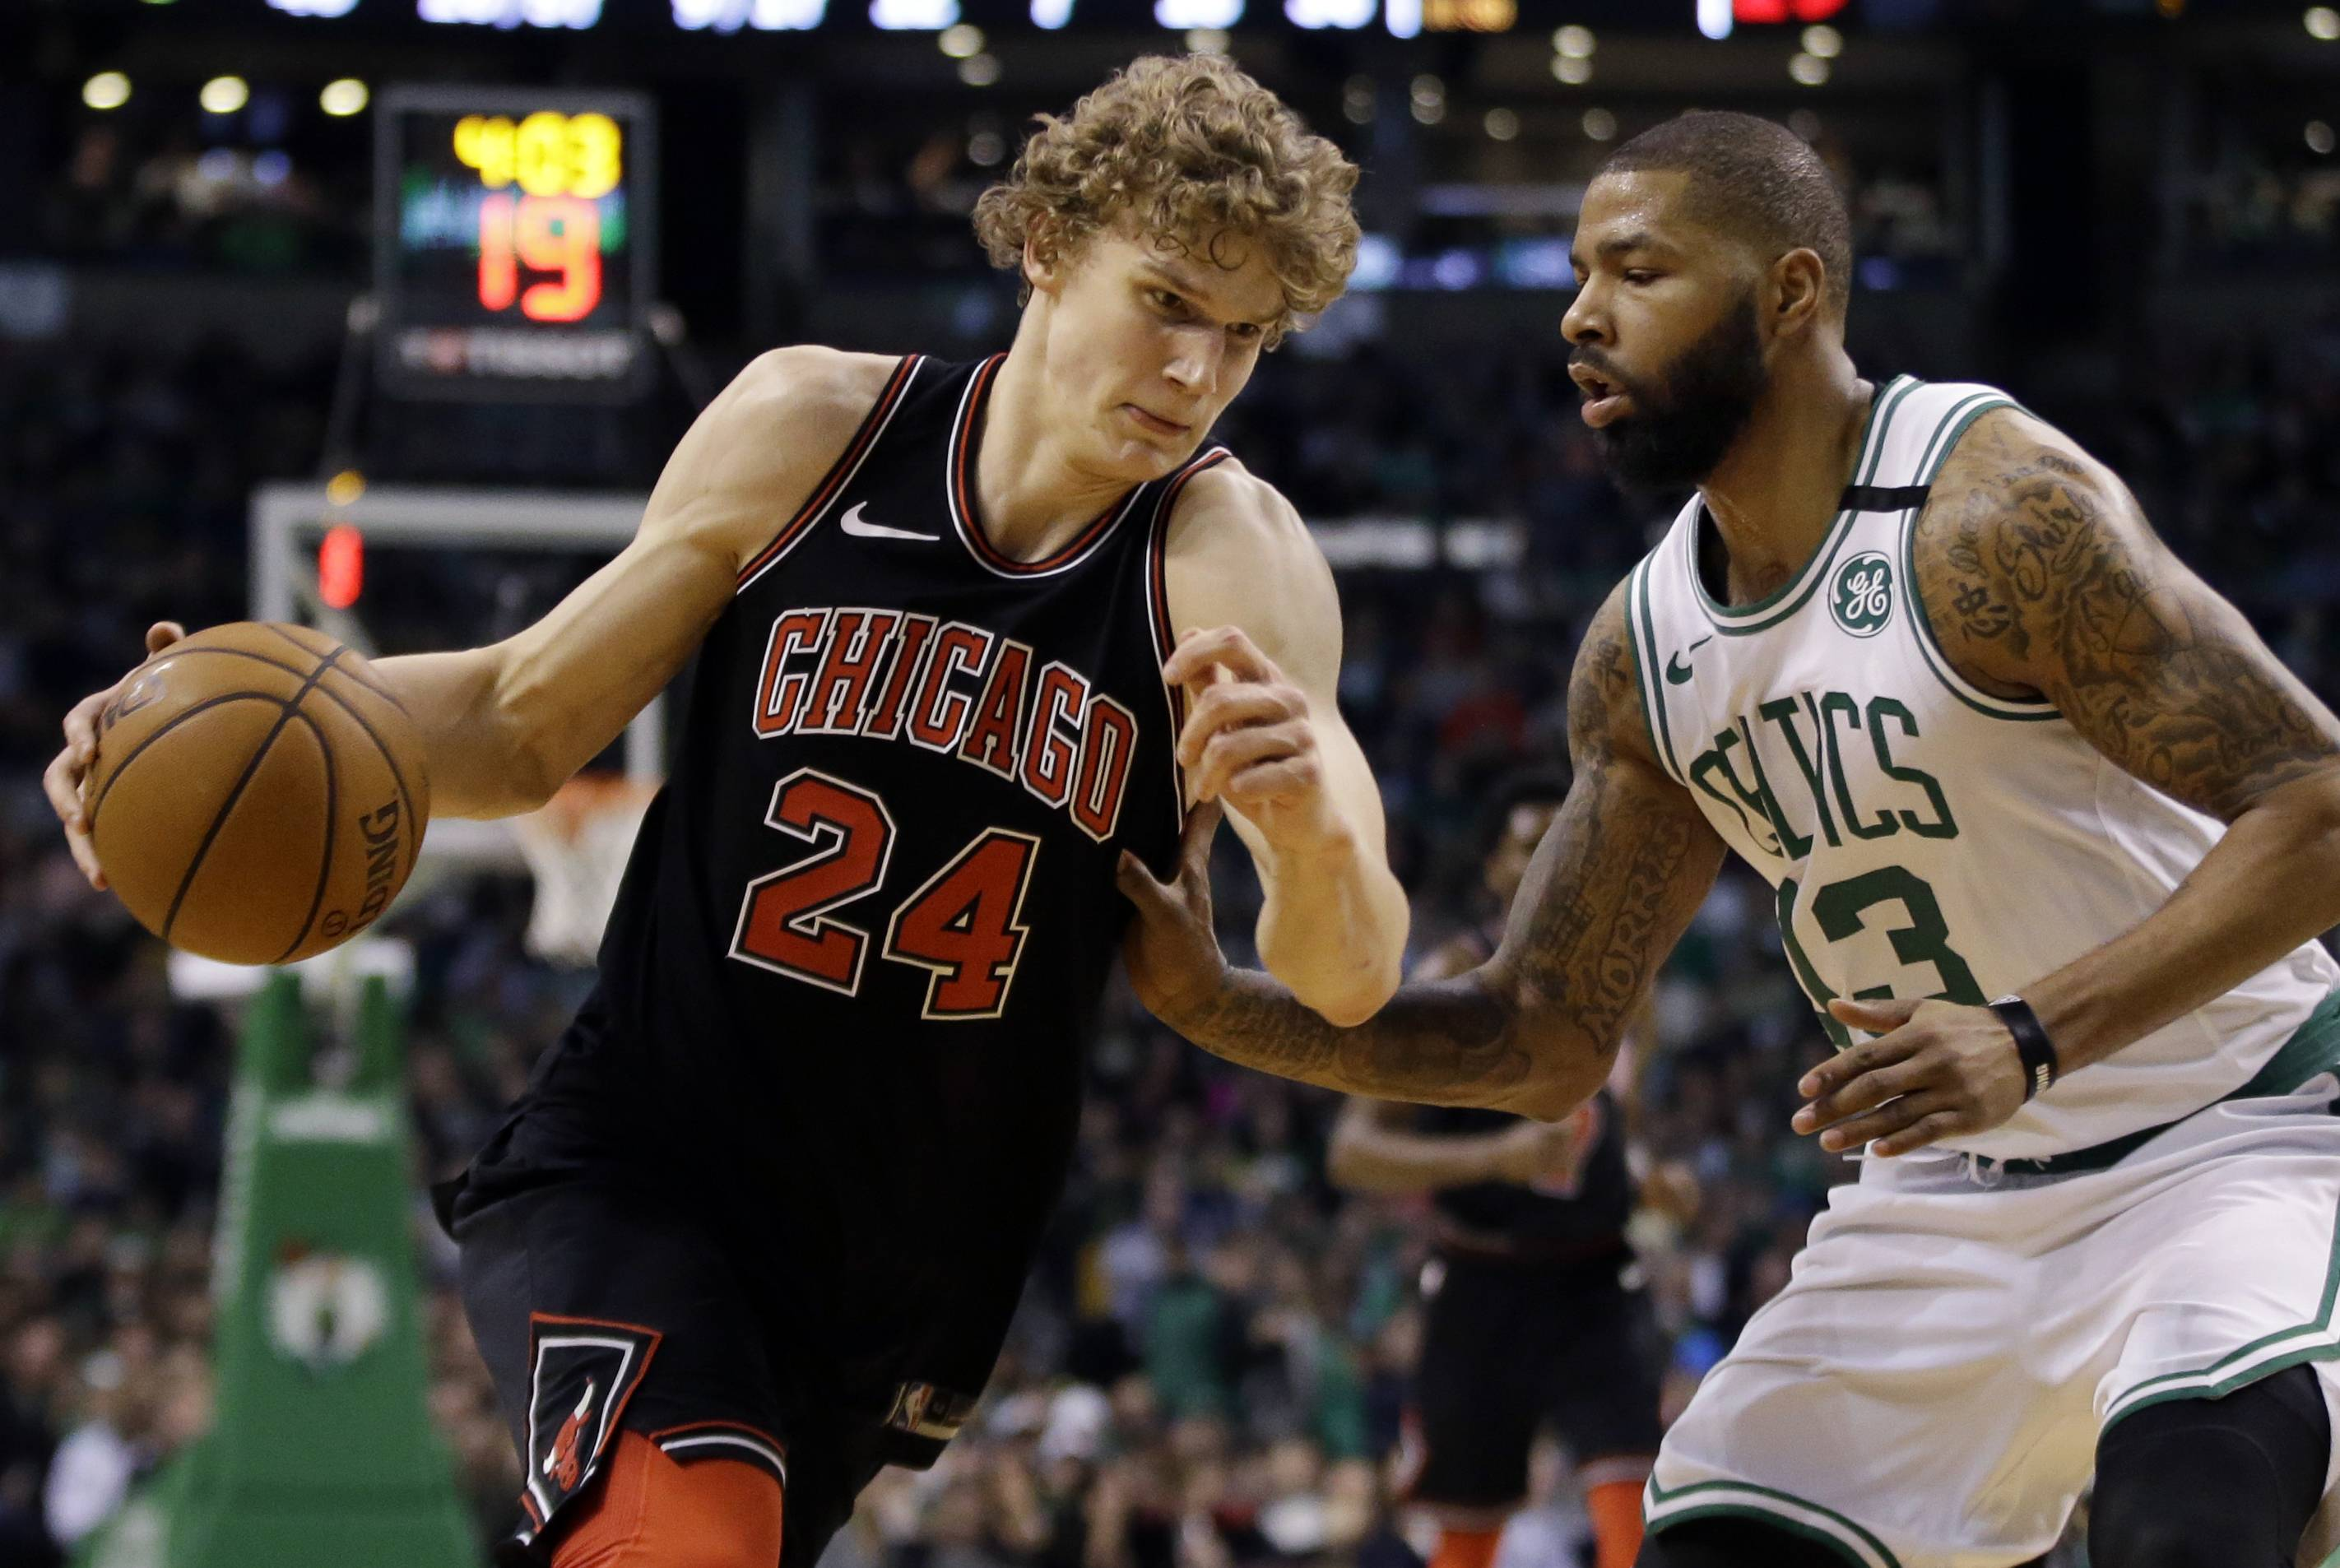 Chicago Bulls forward Lauri Markkanen was the fifth-leading vote-getter for the NBA all-rookie team.